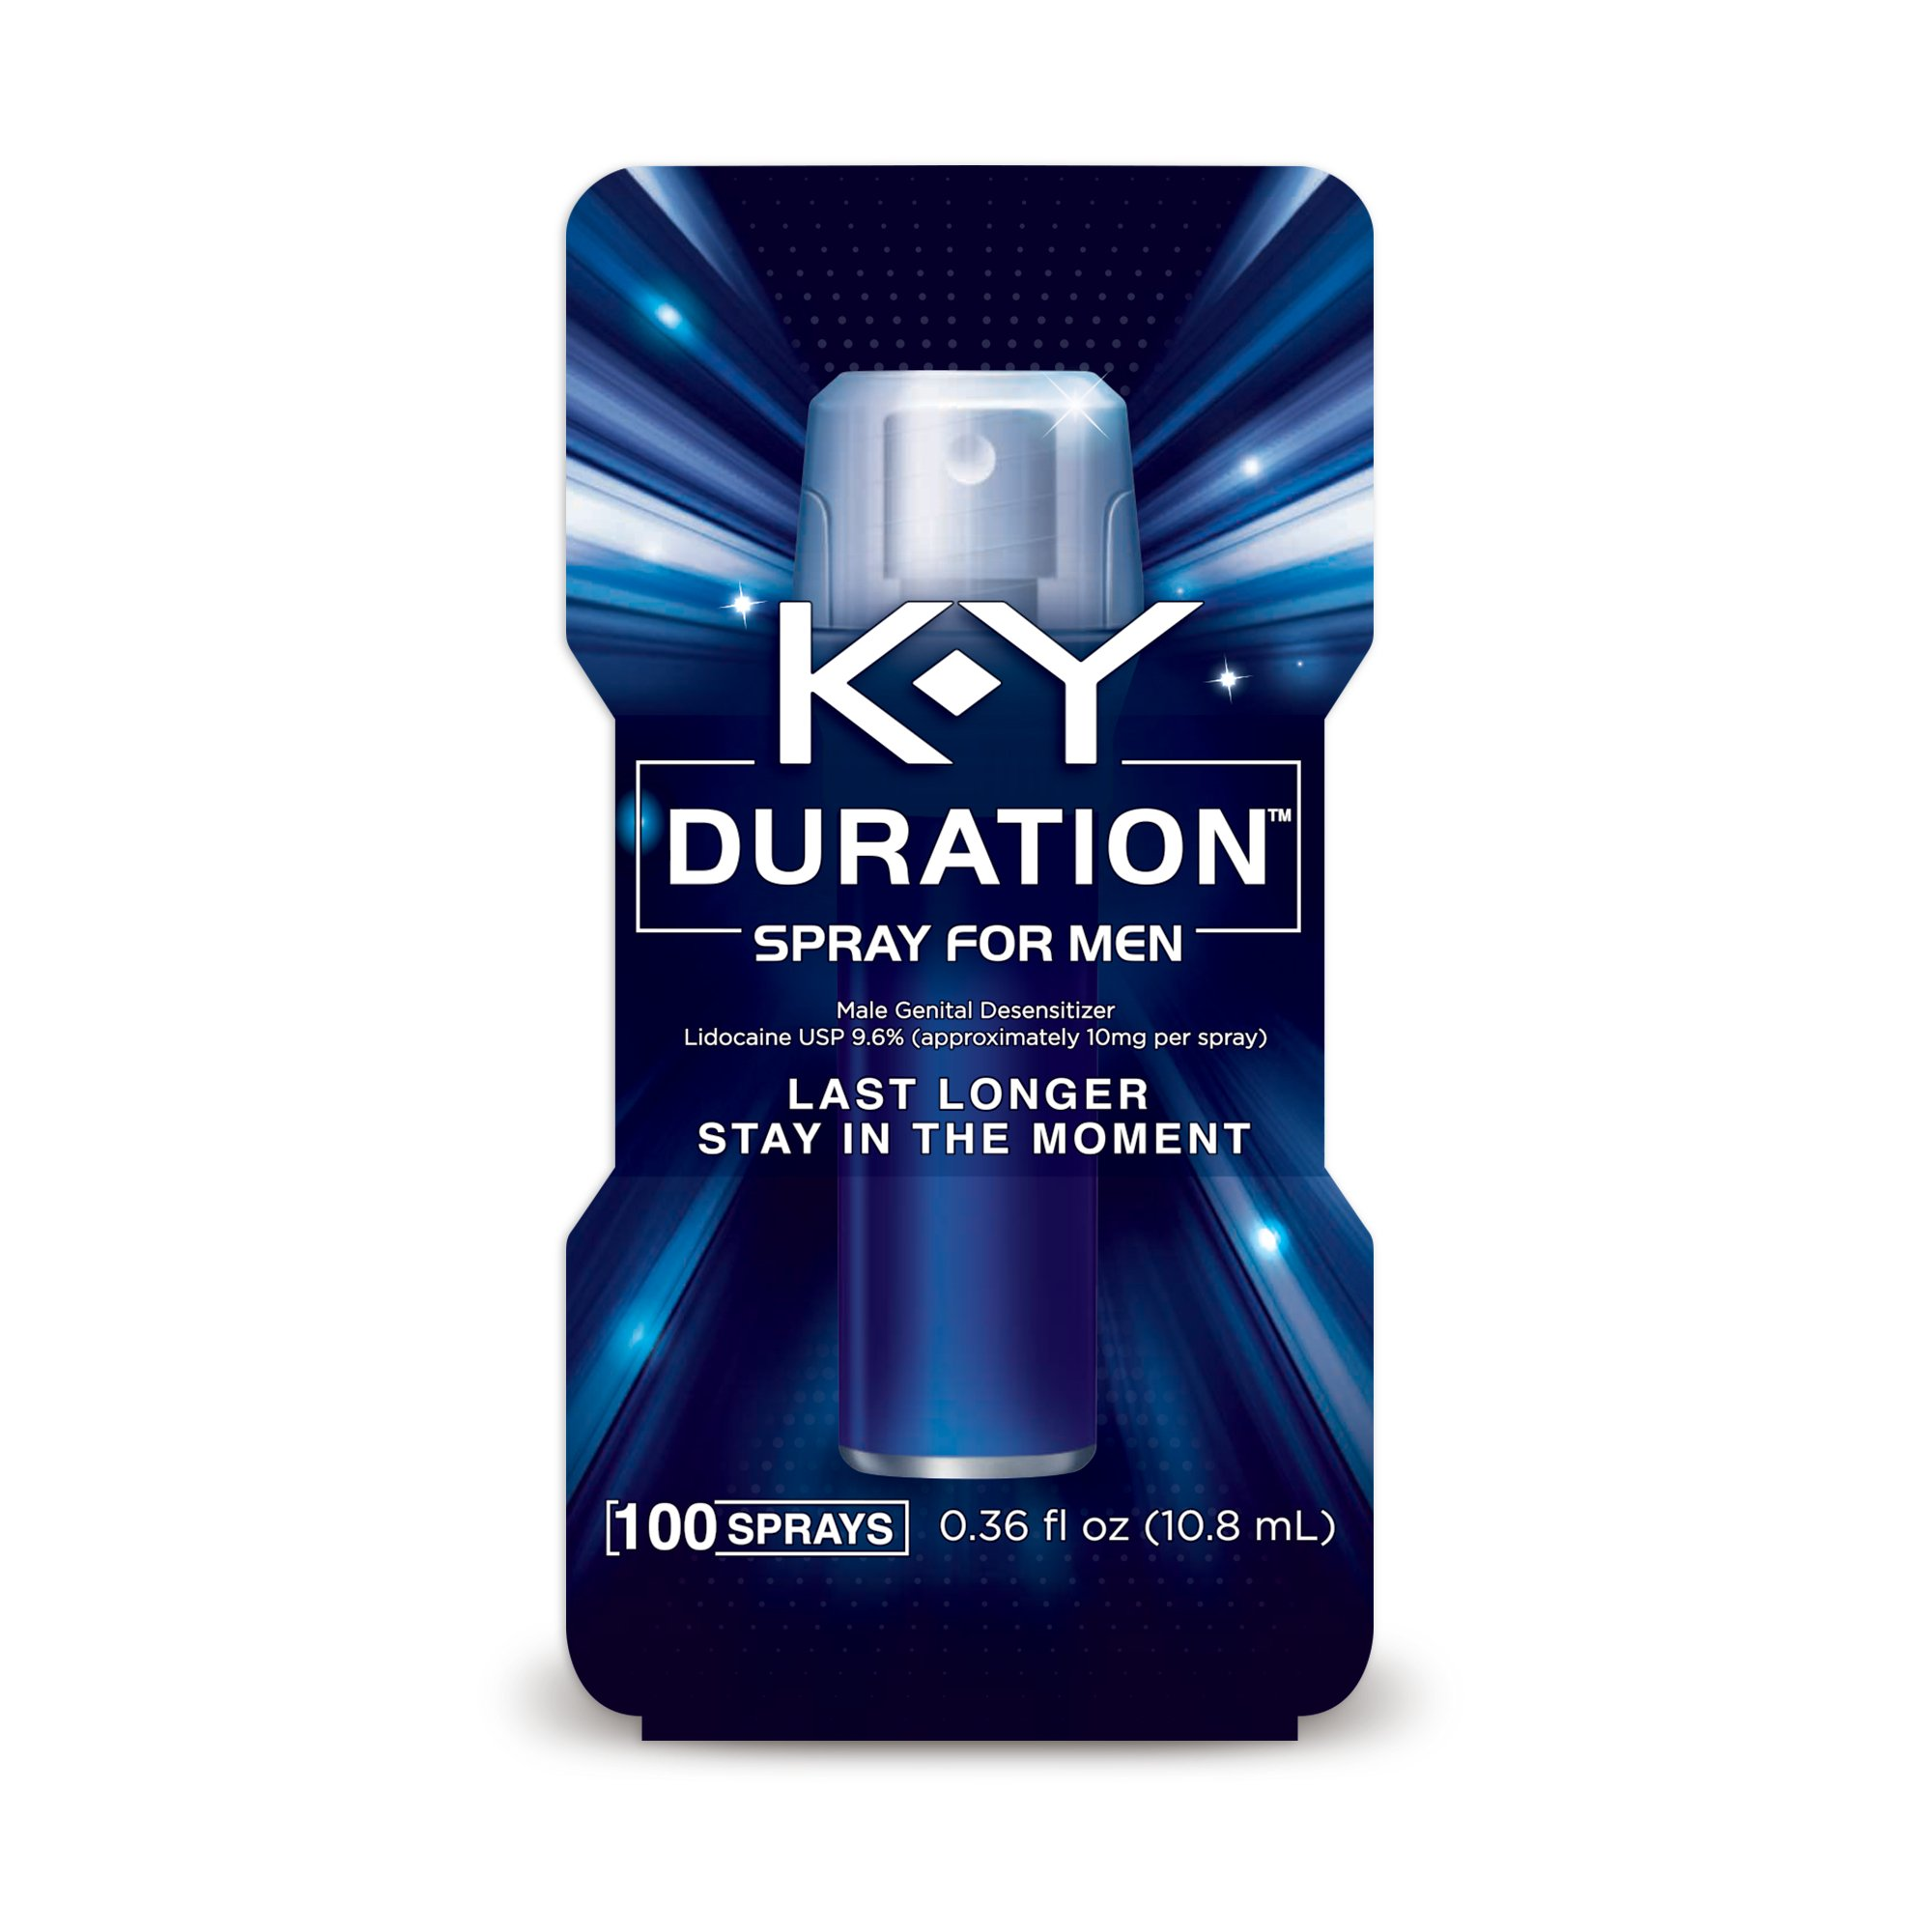 K-Y Duration Spray for Men - Last Longer and Stay in the Moment, 100 sprays / 0.36 fl oz